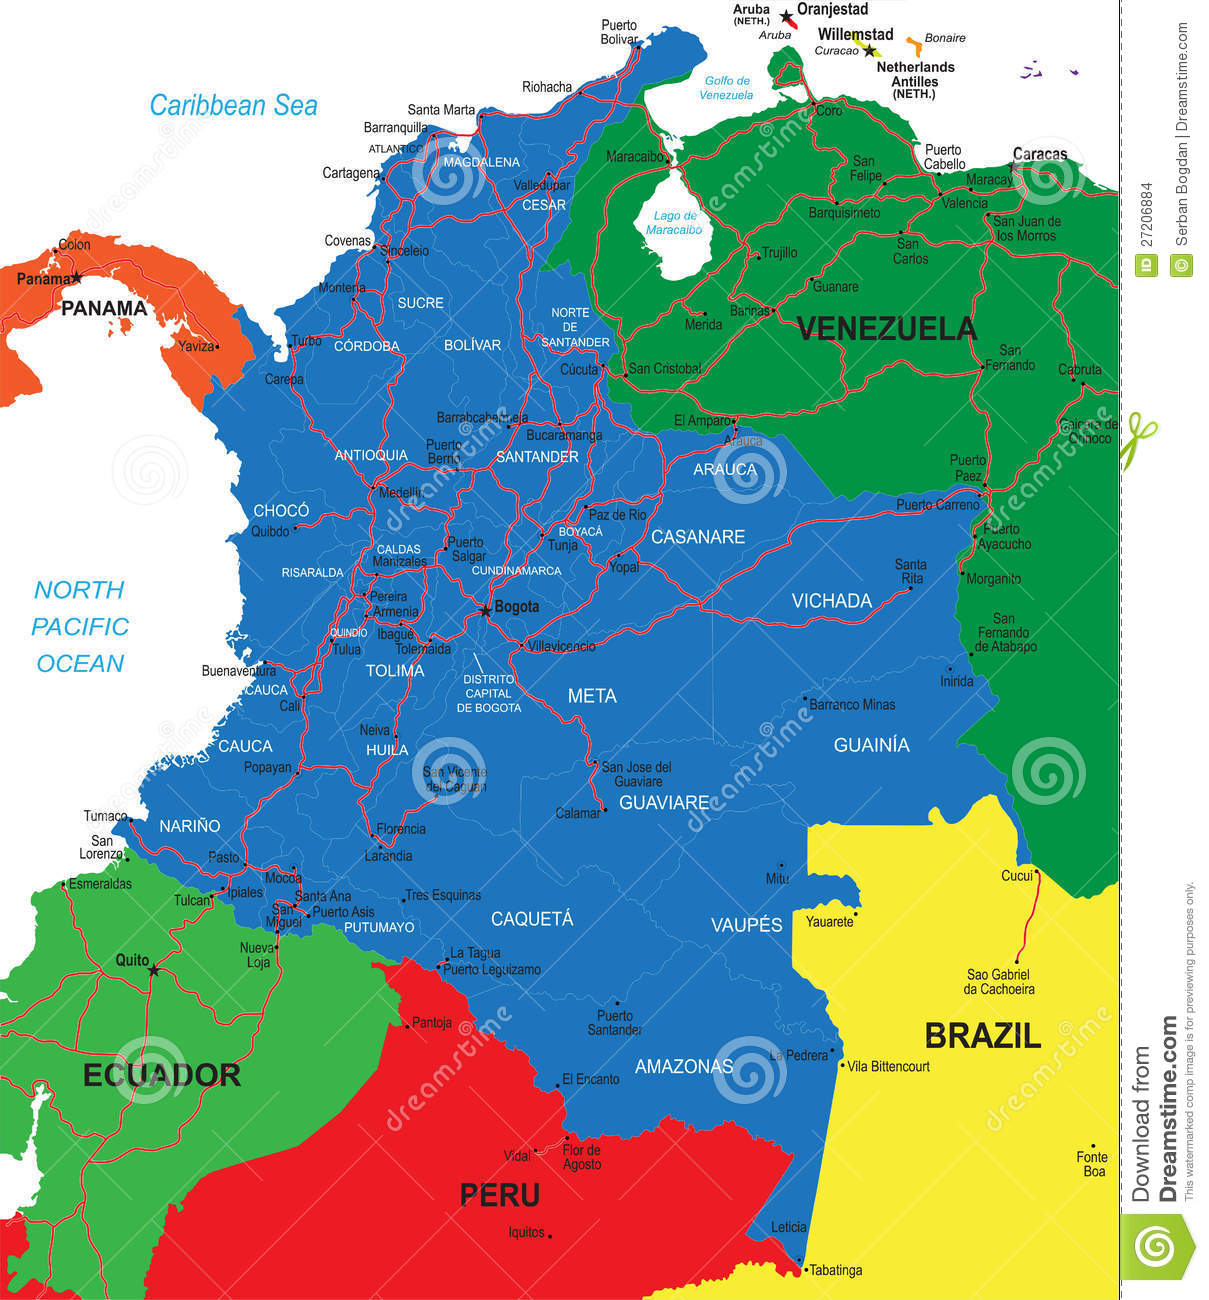 ecuador map with Stock Afbeeldingen De Kaart Van Colombia Image27206884 on Itinerarios additionally Peru Physical Map 2006 together with Mappaecuador in addition Stock Afbeeldingen De Kaart Van Colombia Image27206884 together with Secrets Vilcabamba Playground Inca And Valley Longevity 002693.